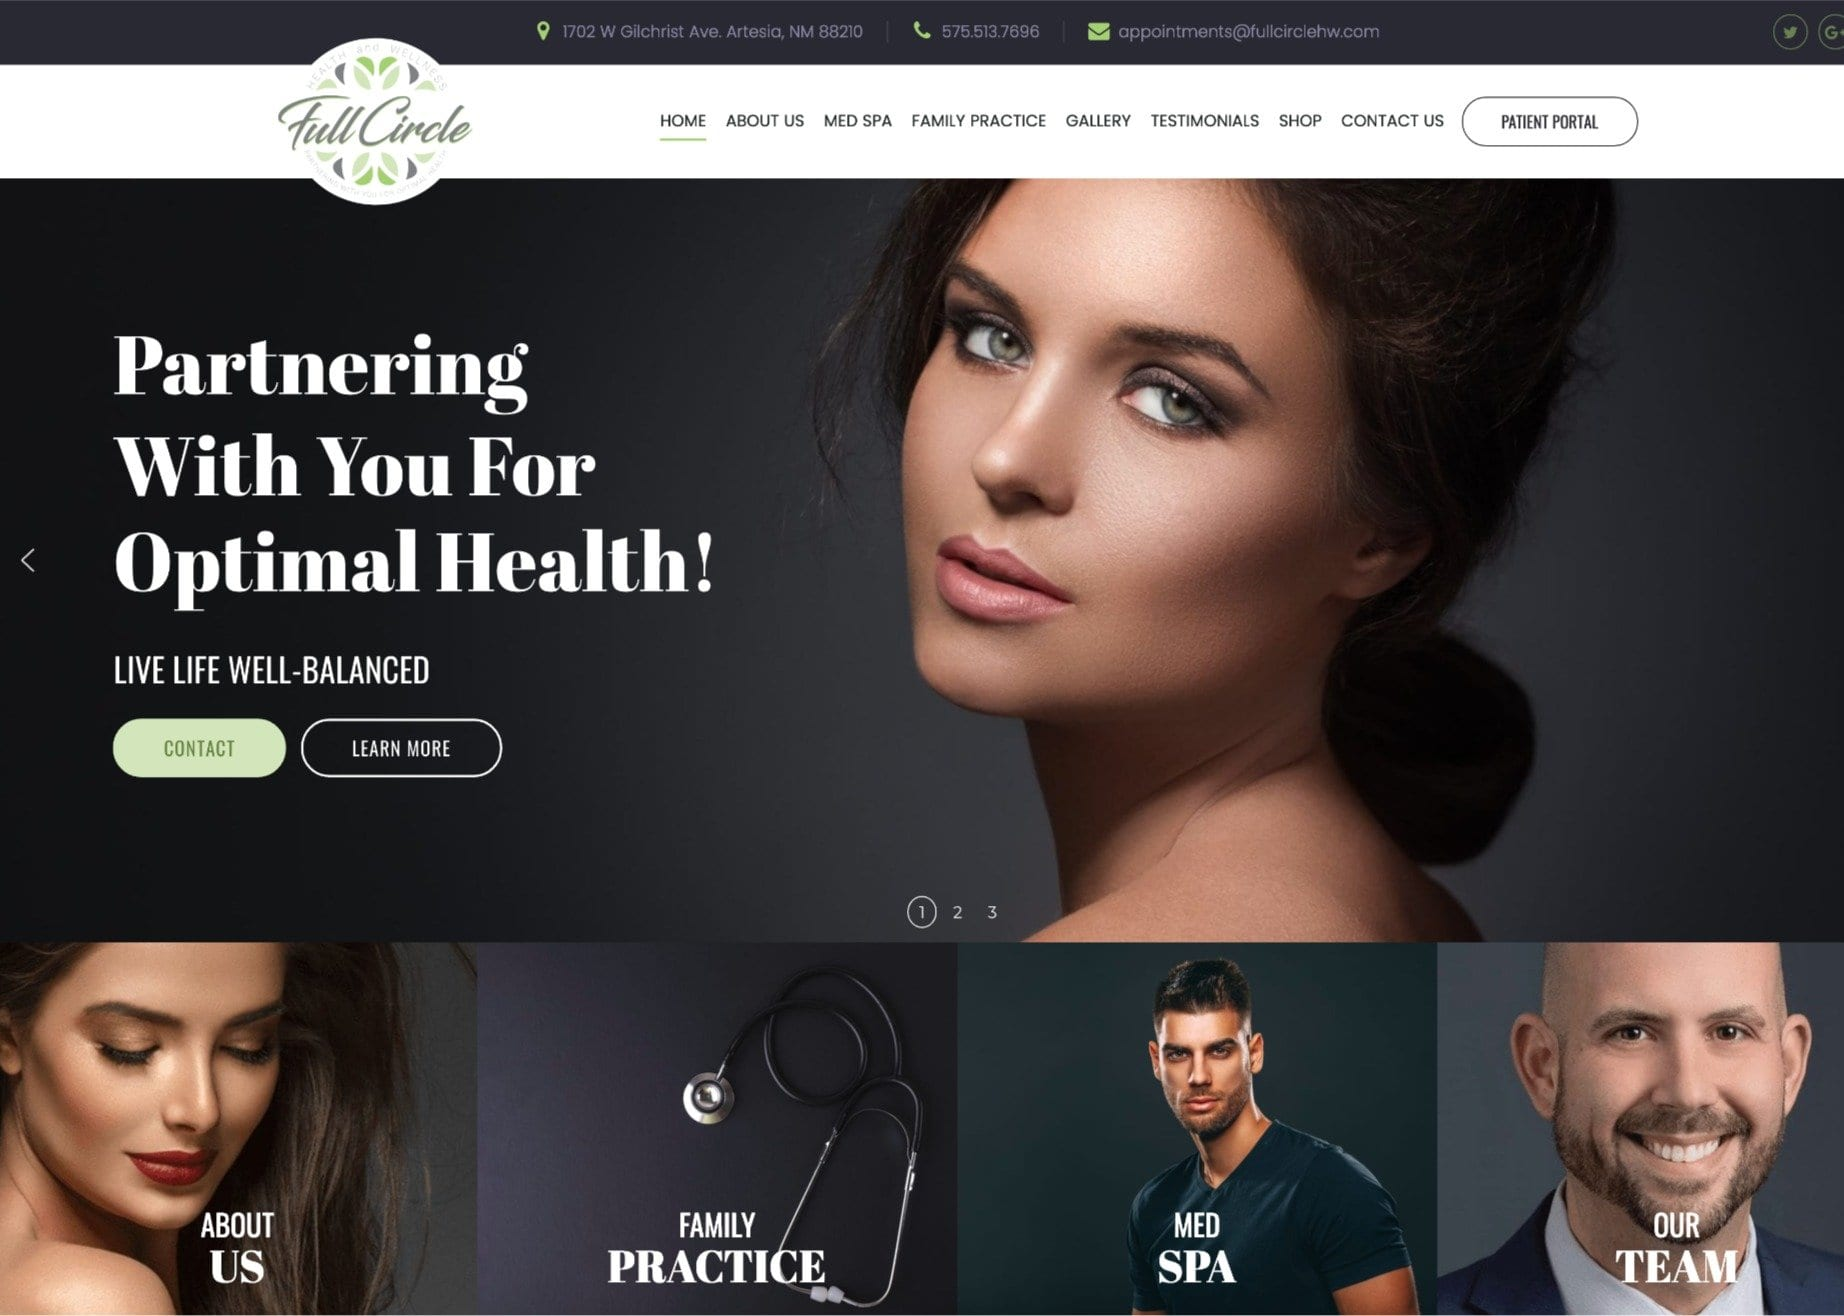 Full Circle Dental Group Website Screenshot